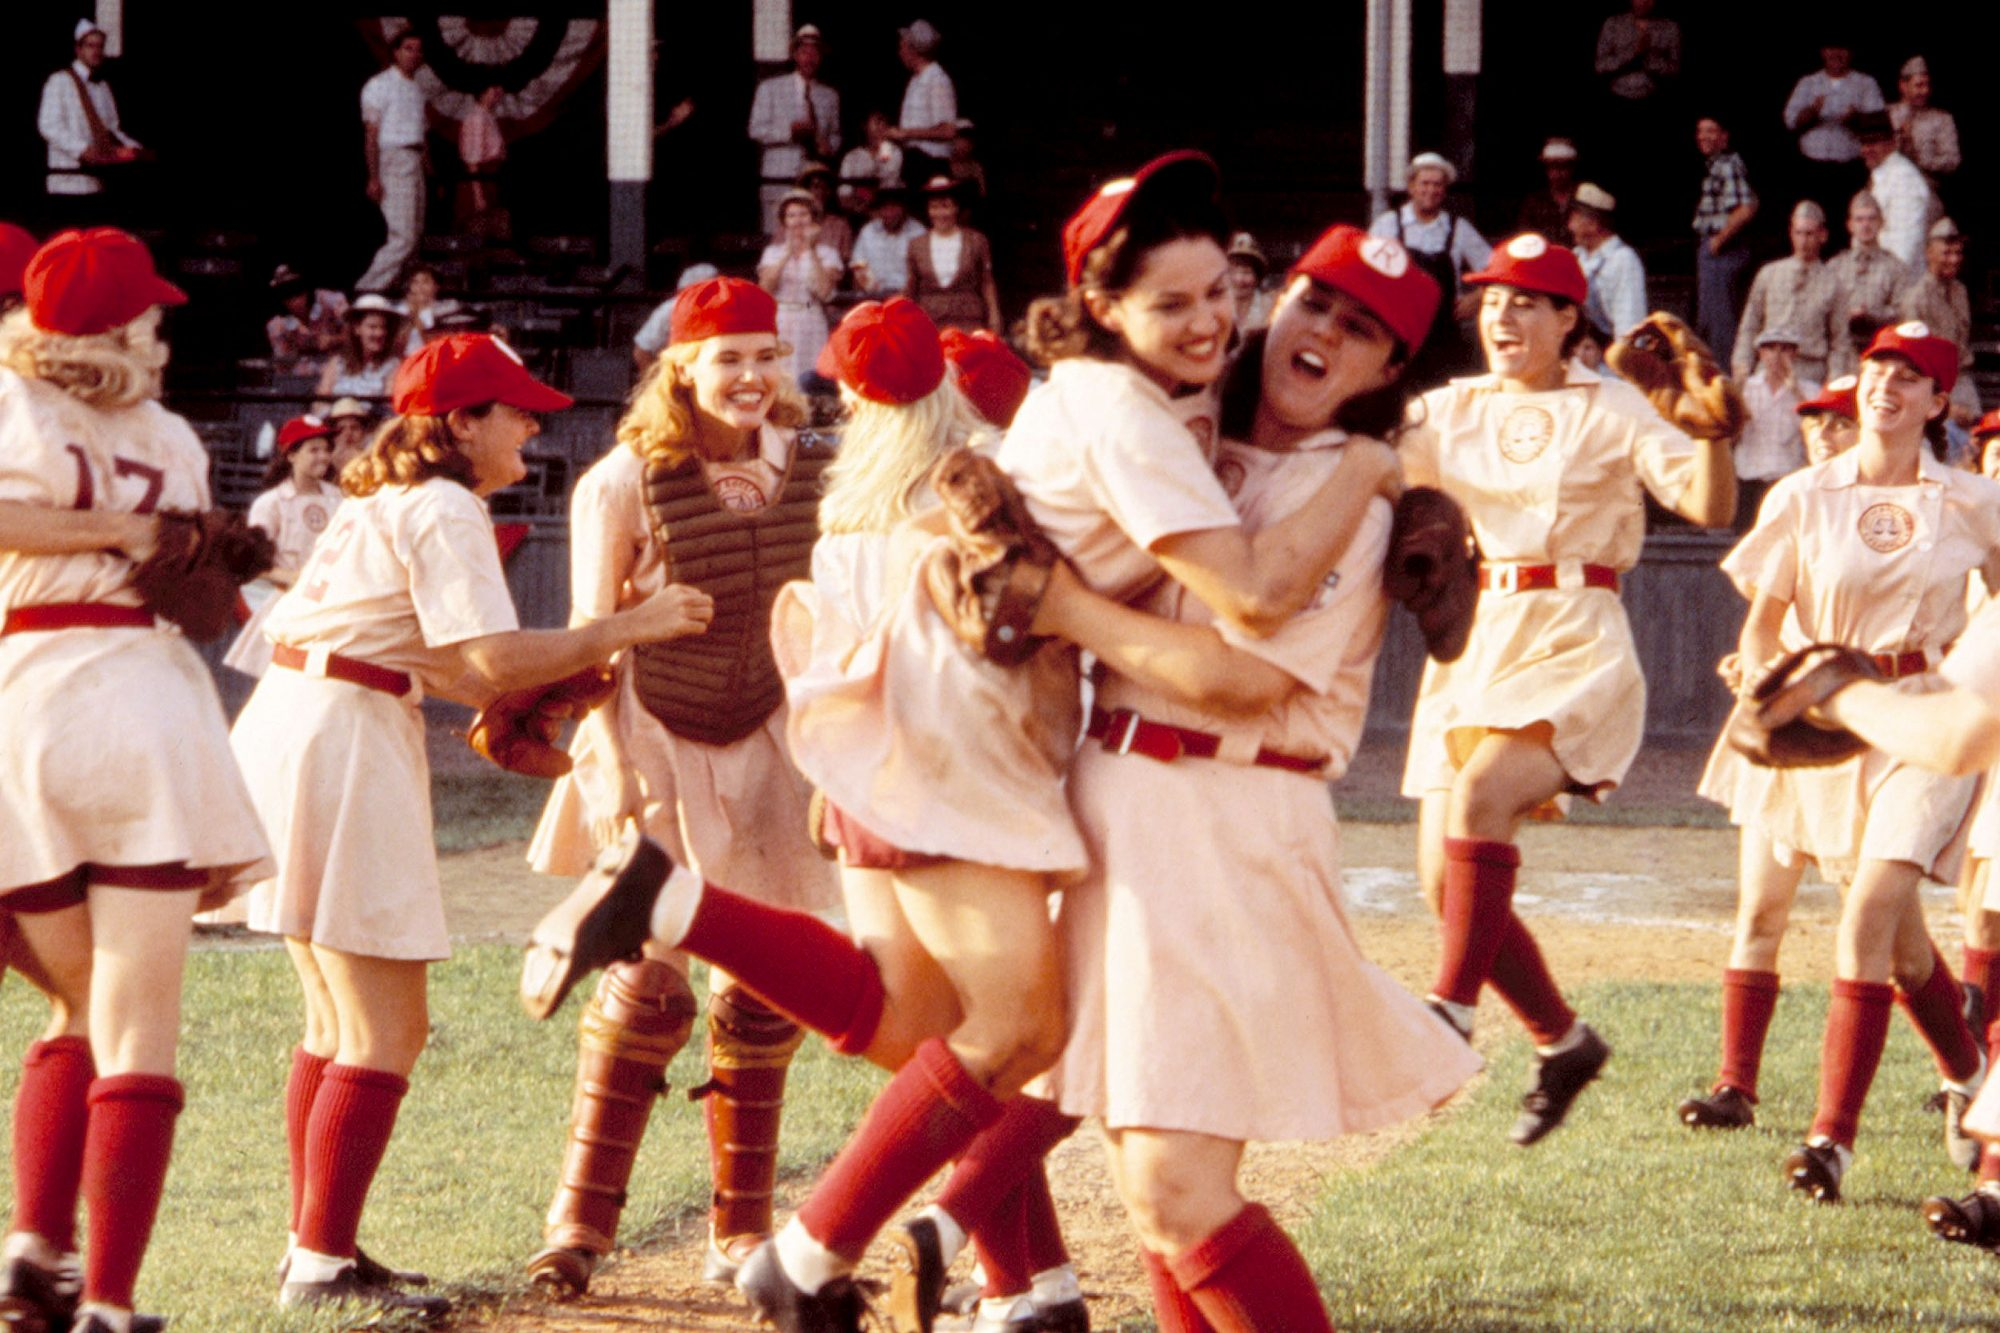 A LEAGUE OF THEIR OWN, Geena Davis, Madonna, Rosie O'Donnell, 1992. © Columbia Pictures/Courtesy Eve